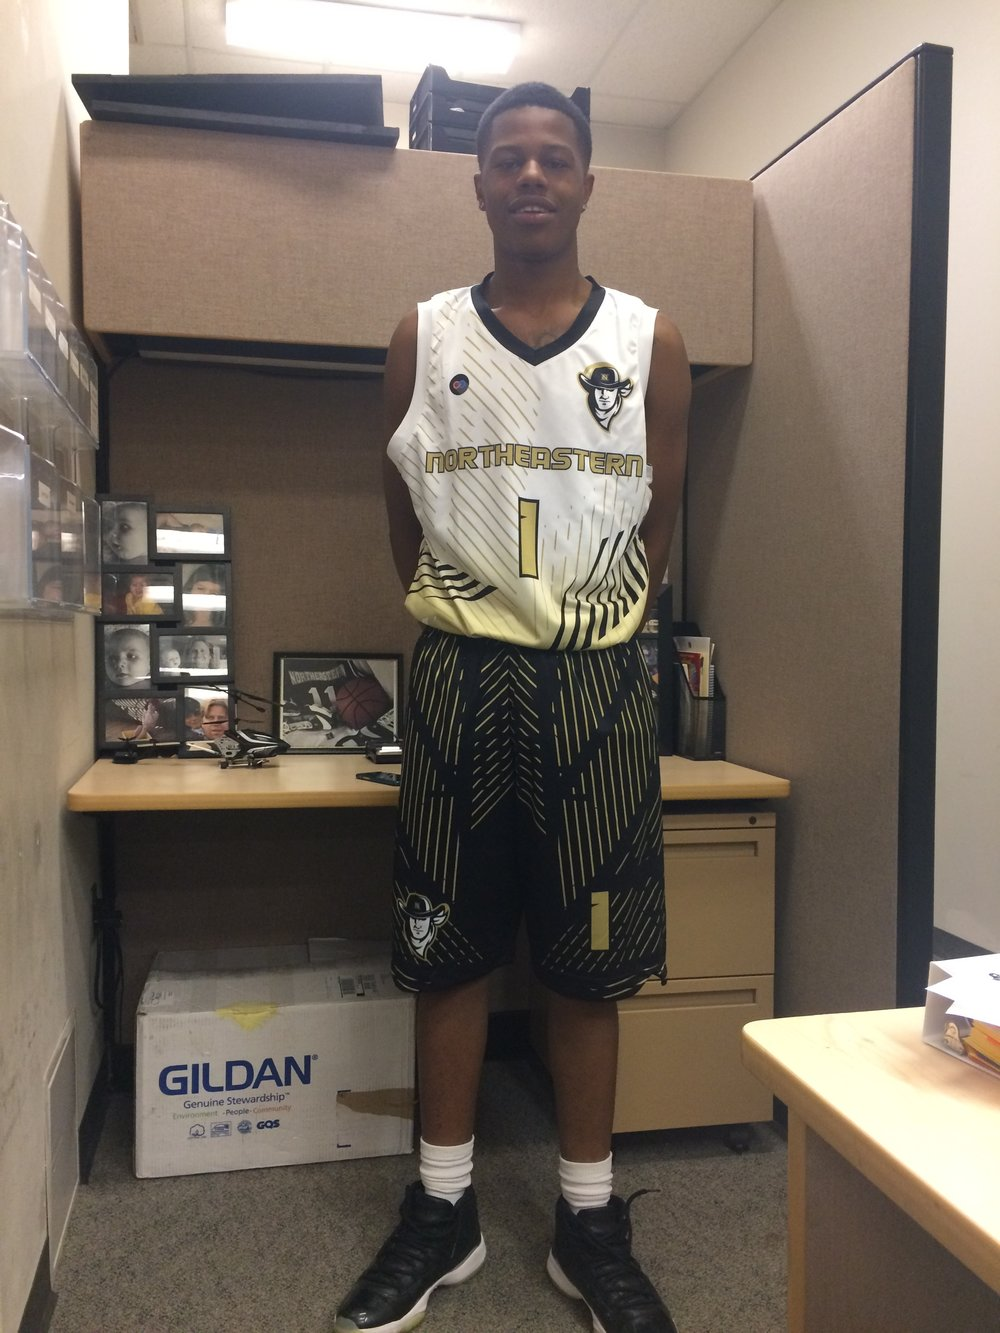 Black Vegas Gold and White Basketball Uniforms, Jersey and Shorts